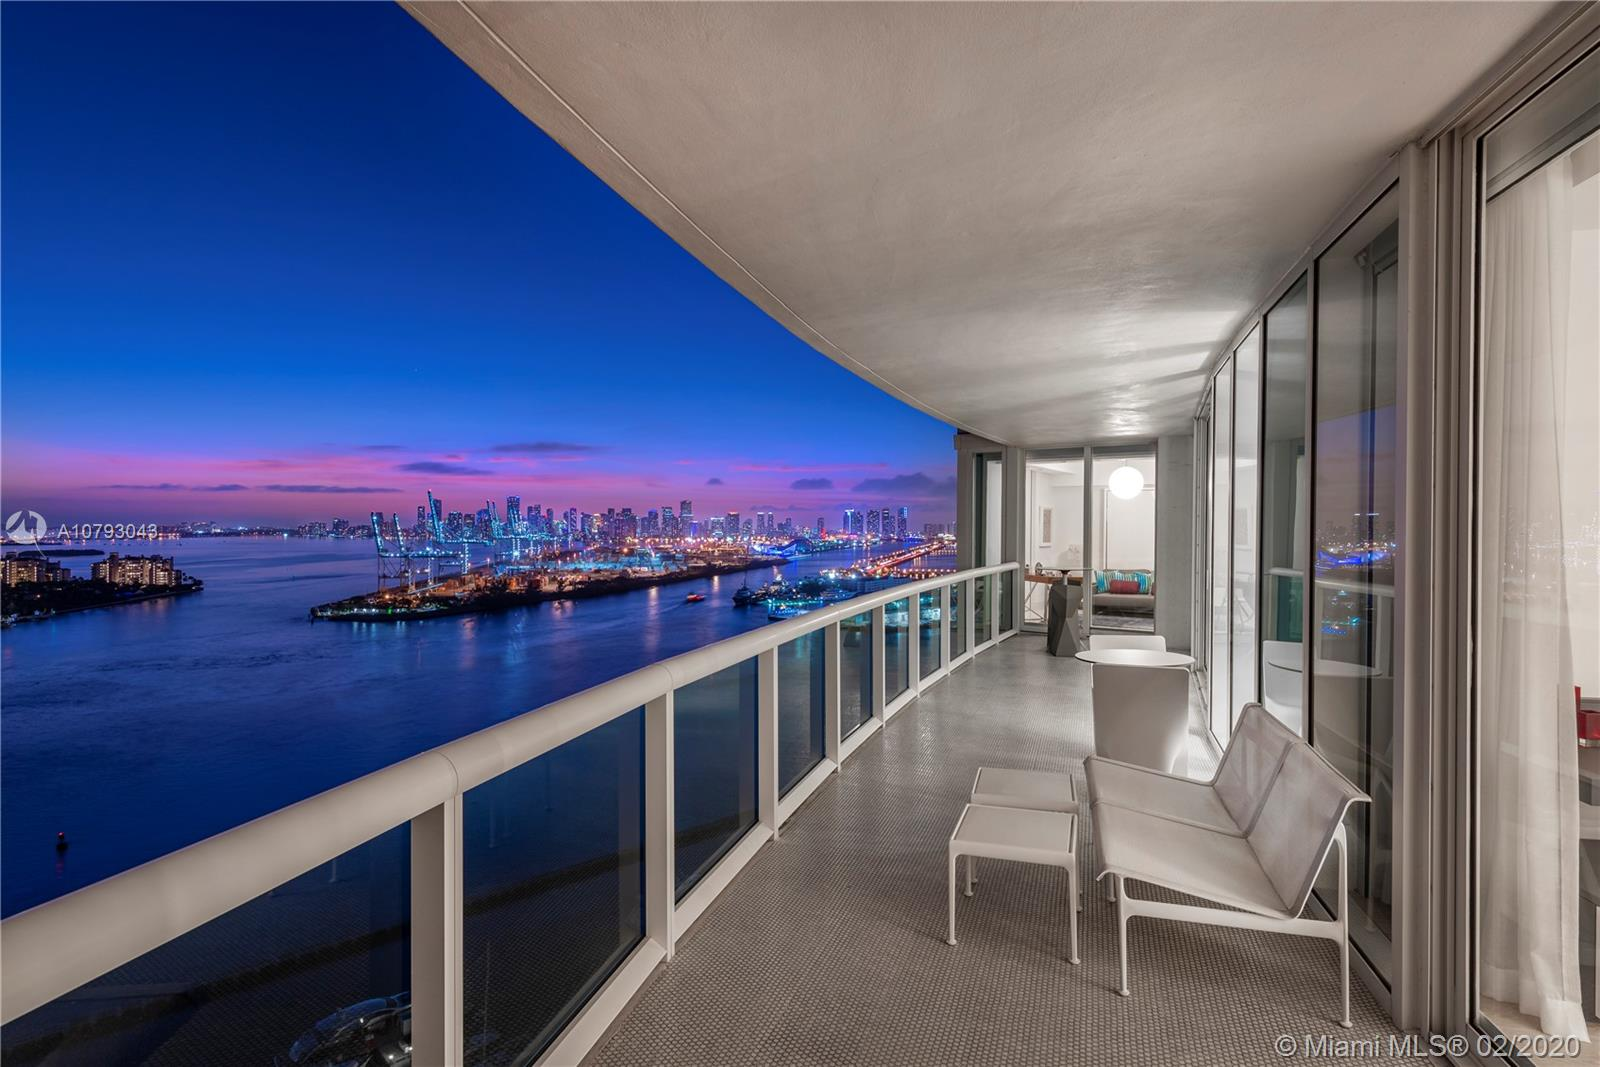 Renovated to perfection with unmatched views, this stunning home is the definition of pure luxury. Interior designer Guimar Urbina draws inspiration from the lively Miami Beach city blending it with striking embellishments to execute flawless design. Boasting floor to ceiling glass windows, Lutron shades, a Crestron smart home system, Arclinea kitchen cabinets & Miele appliances, custom Ornare master bedroom & closet and most interior furniture custom made by Guimar Urbina herself. Located in the sought after South of Fifth neighborhood, enjoy all the Murano at Portofino has to offer including two tennis courts, private beach club, complimentary valet, concierge and more.